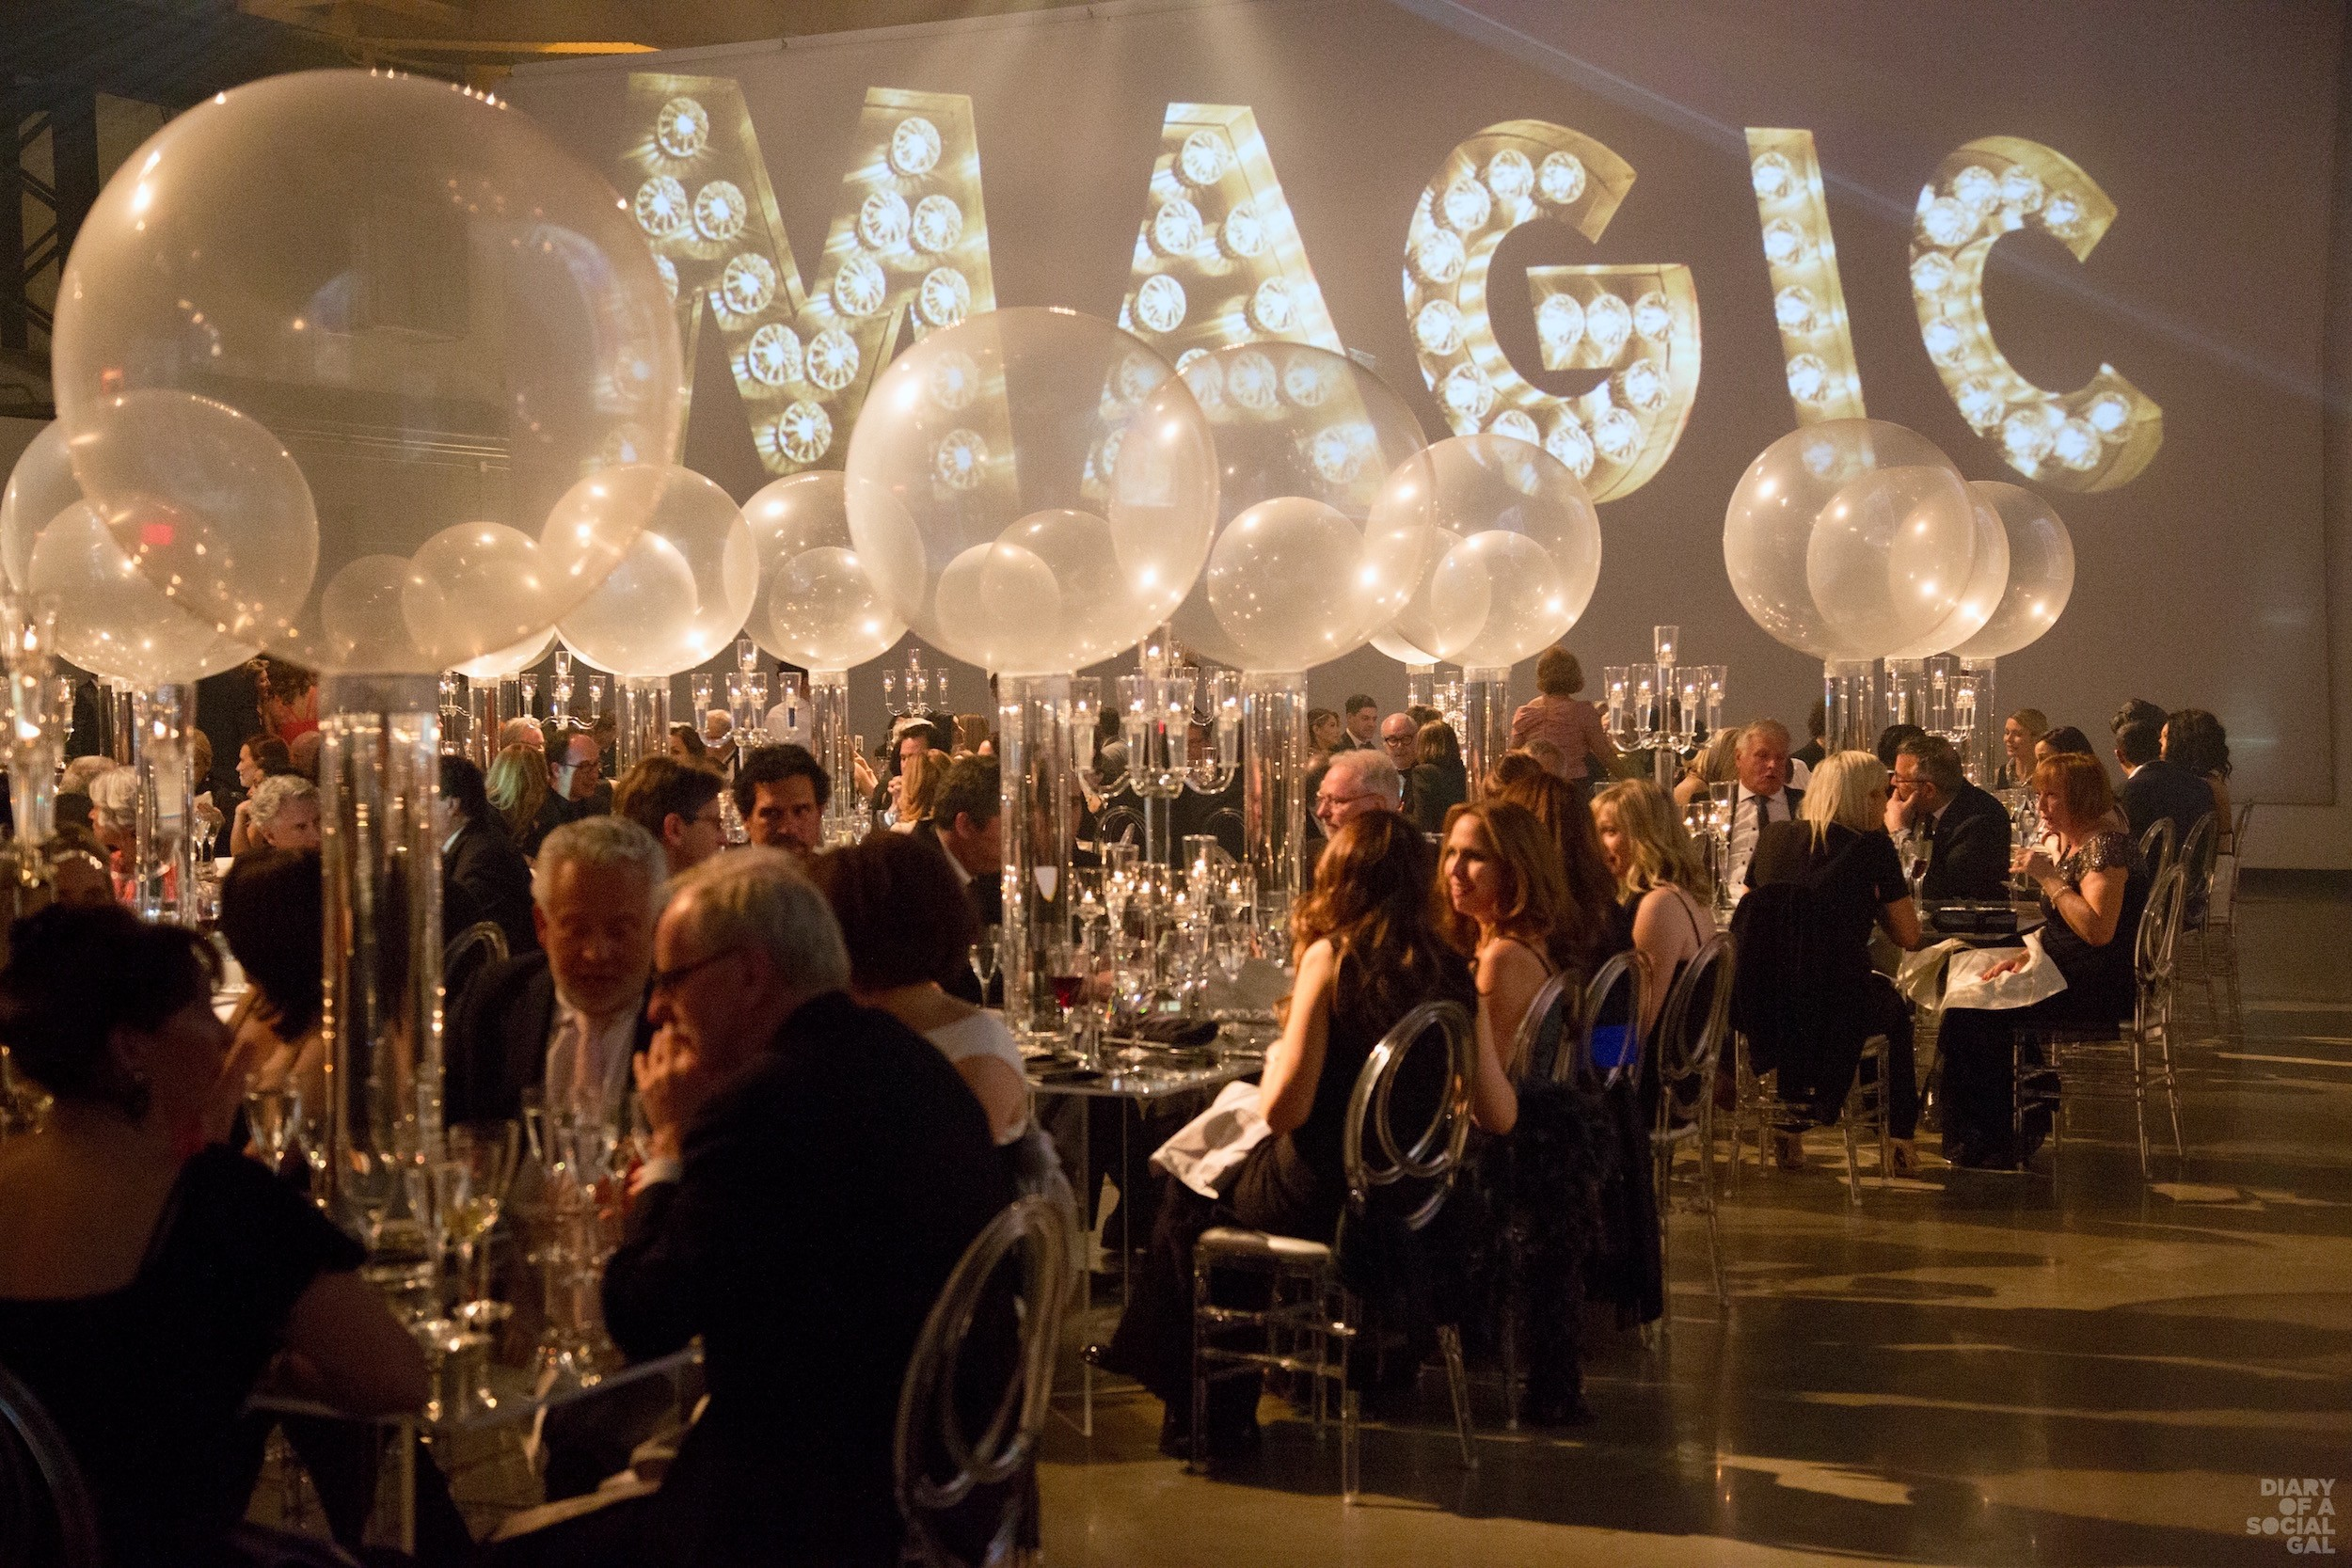 "0527_social_MagicMoments MCCORD MAGIC PARTOUT: Art director Dick Walsh creates an oasis of fun and illusion at the McCord Museum Annual Ball ""Abracadabra."" ADONIS NOAILE"